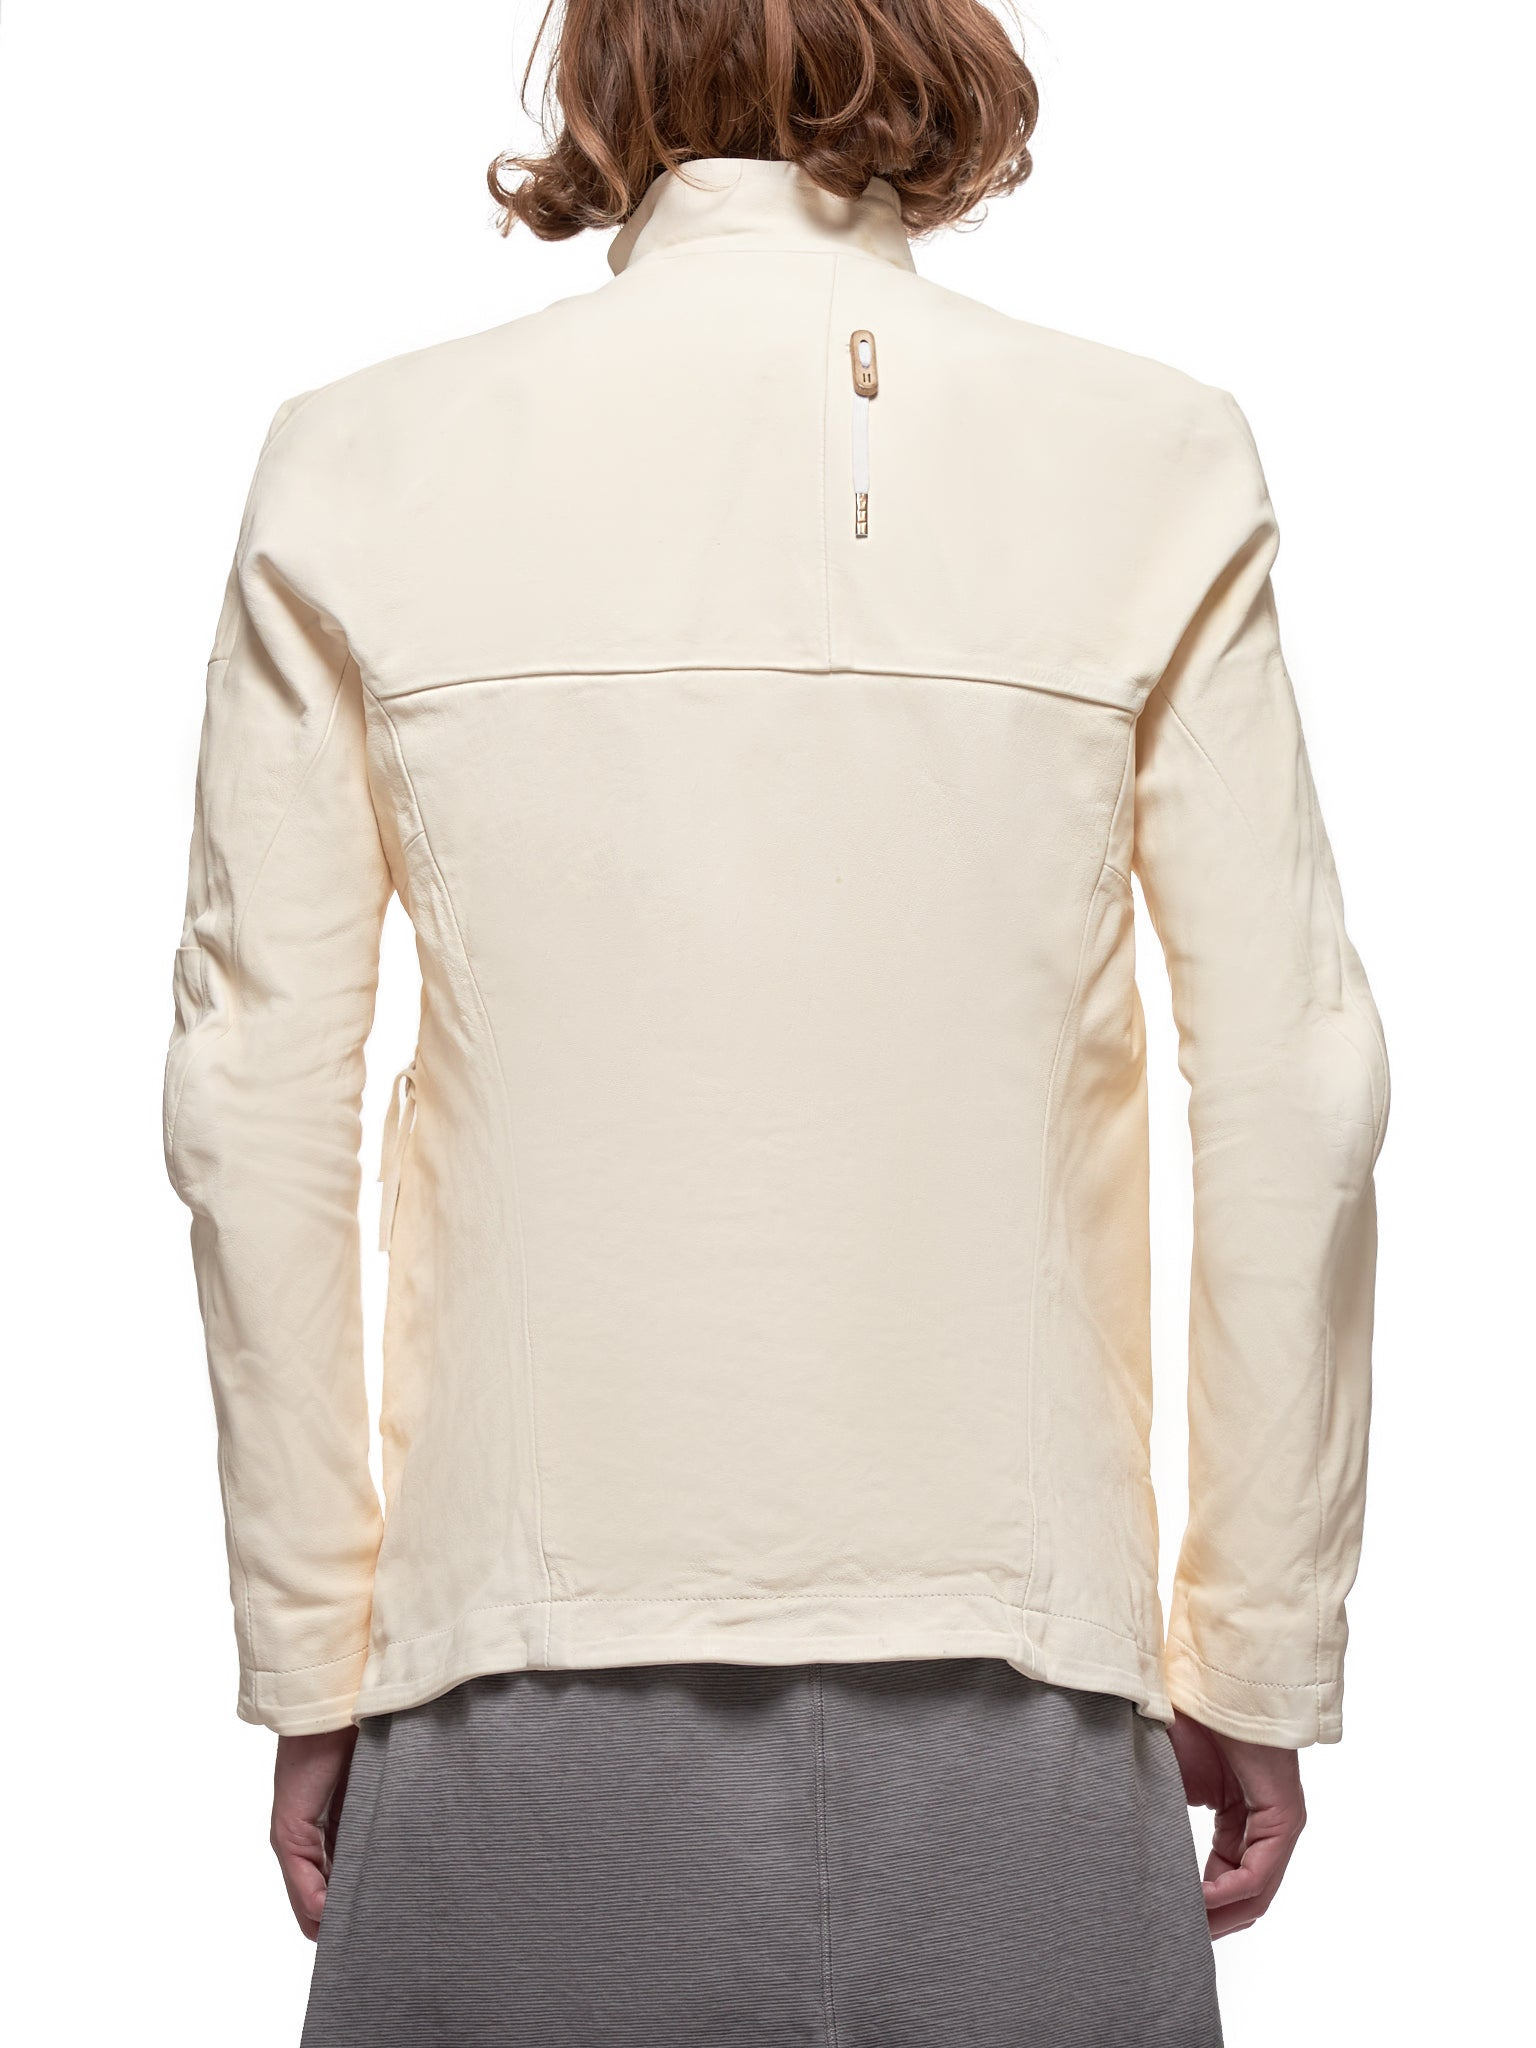 Kangaroo Leather Jacket (J5-FMM20006-WHITE-TAN)